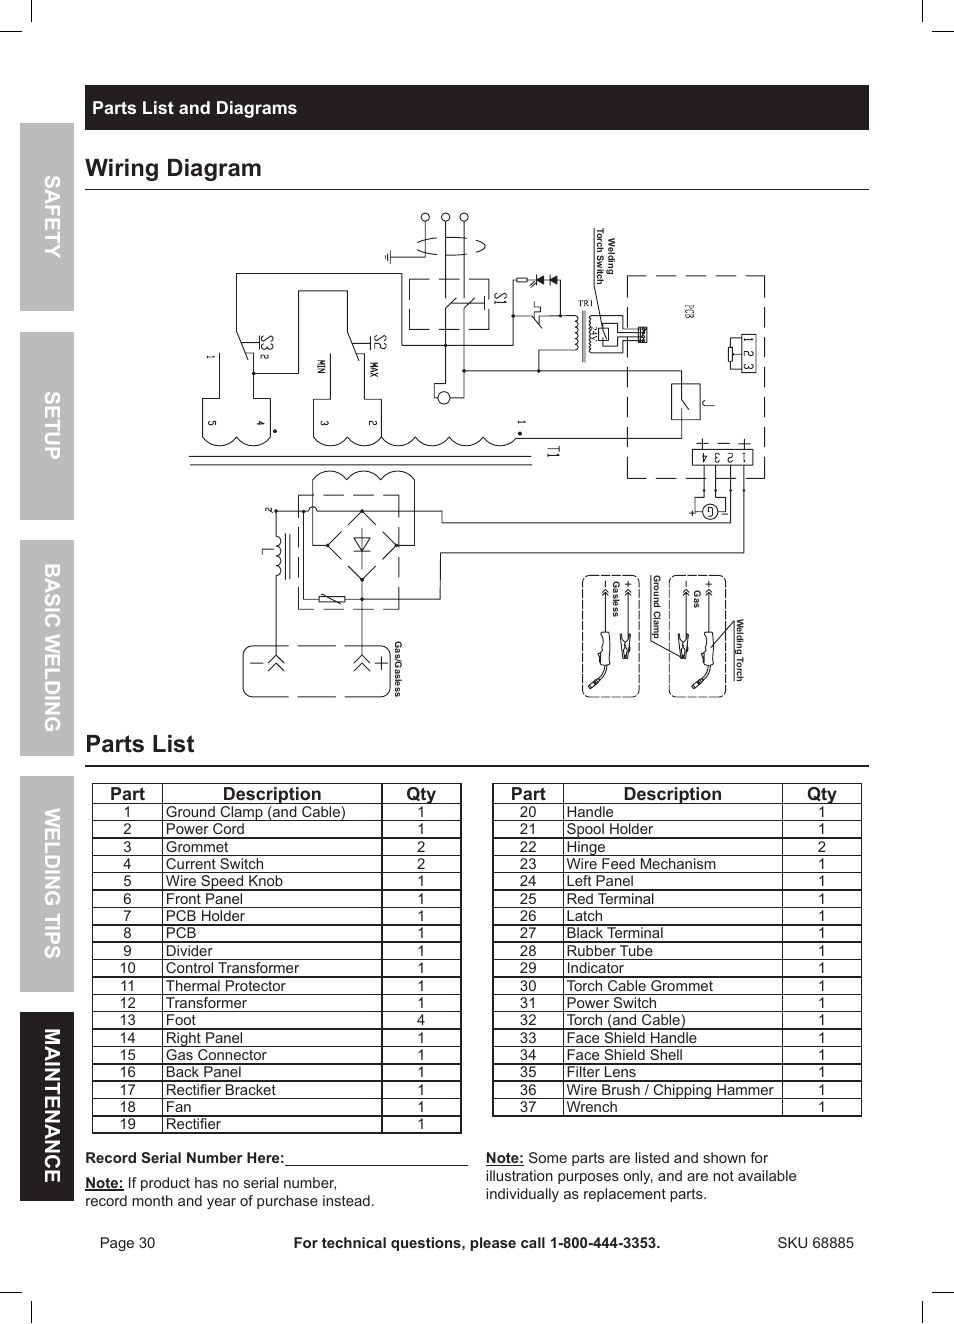 hight resolution of wiring diagram parts list chicago electric wire feed welder mig 170 user manual page 30 32